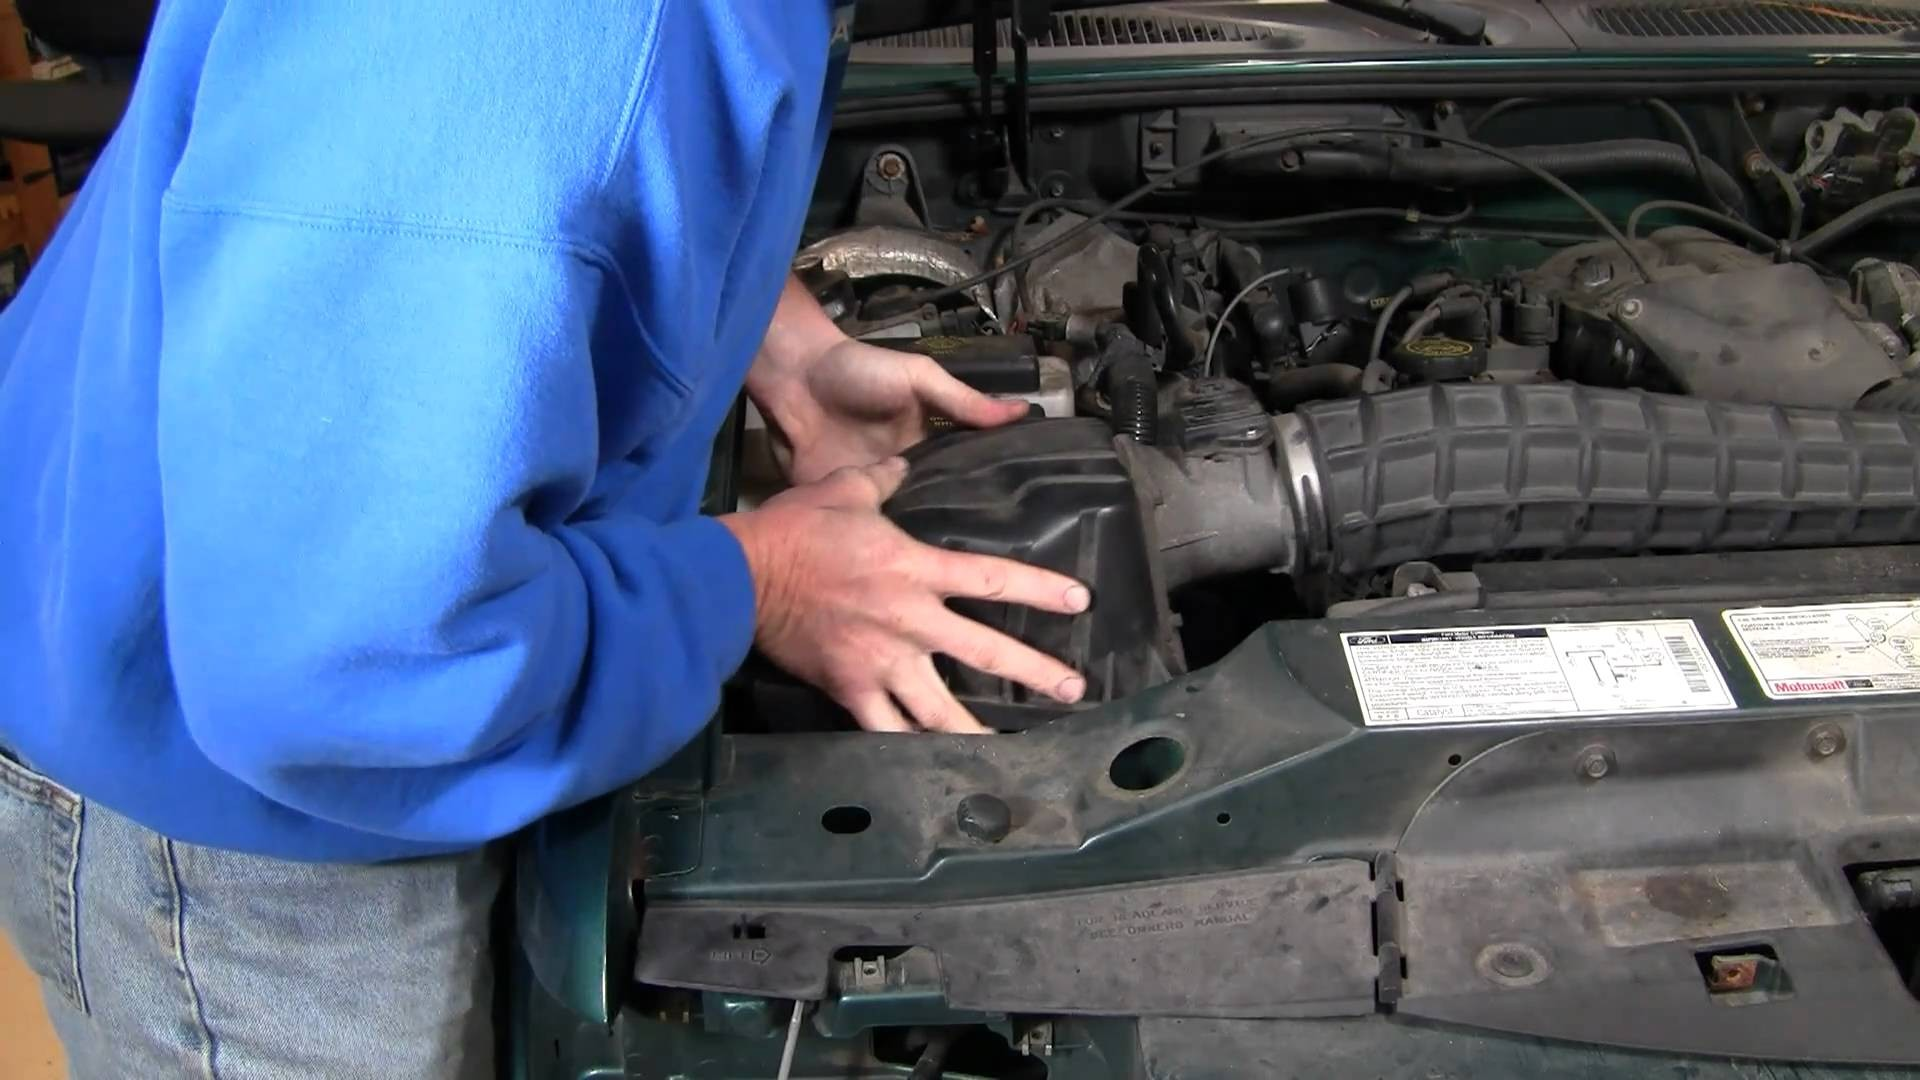 2003 ford Explorer Sport Trac Engine Diagram How to Install Replace Air Filter ford Explorer 4 0l 97 05 1aauto Of 2003 ford Explorer Sport Trac Engine Diagram